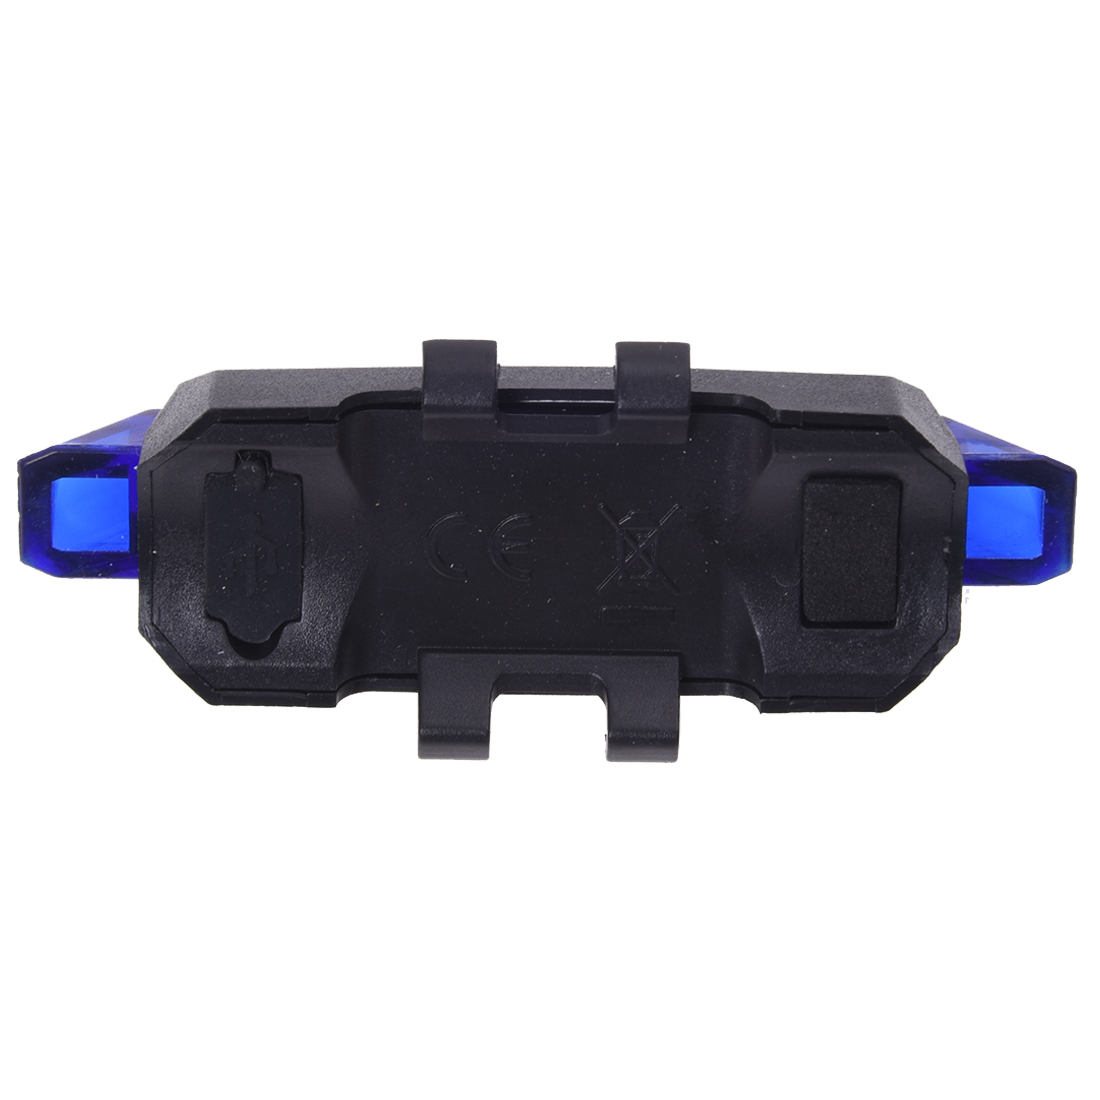 Good Deal 5LED Bicycle Rear Tail Lights Flash USB Rechargeable Bike Safety Lamp Waterproof Black+White Black+Red Black+Blue 8